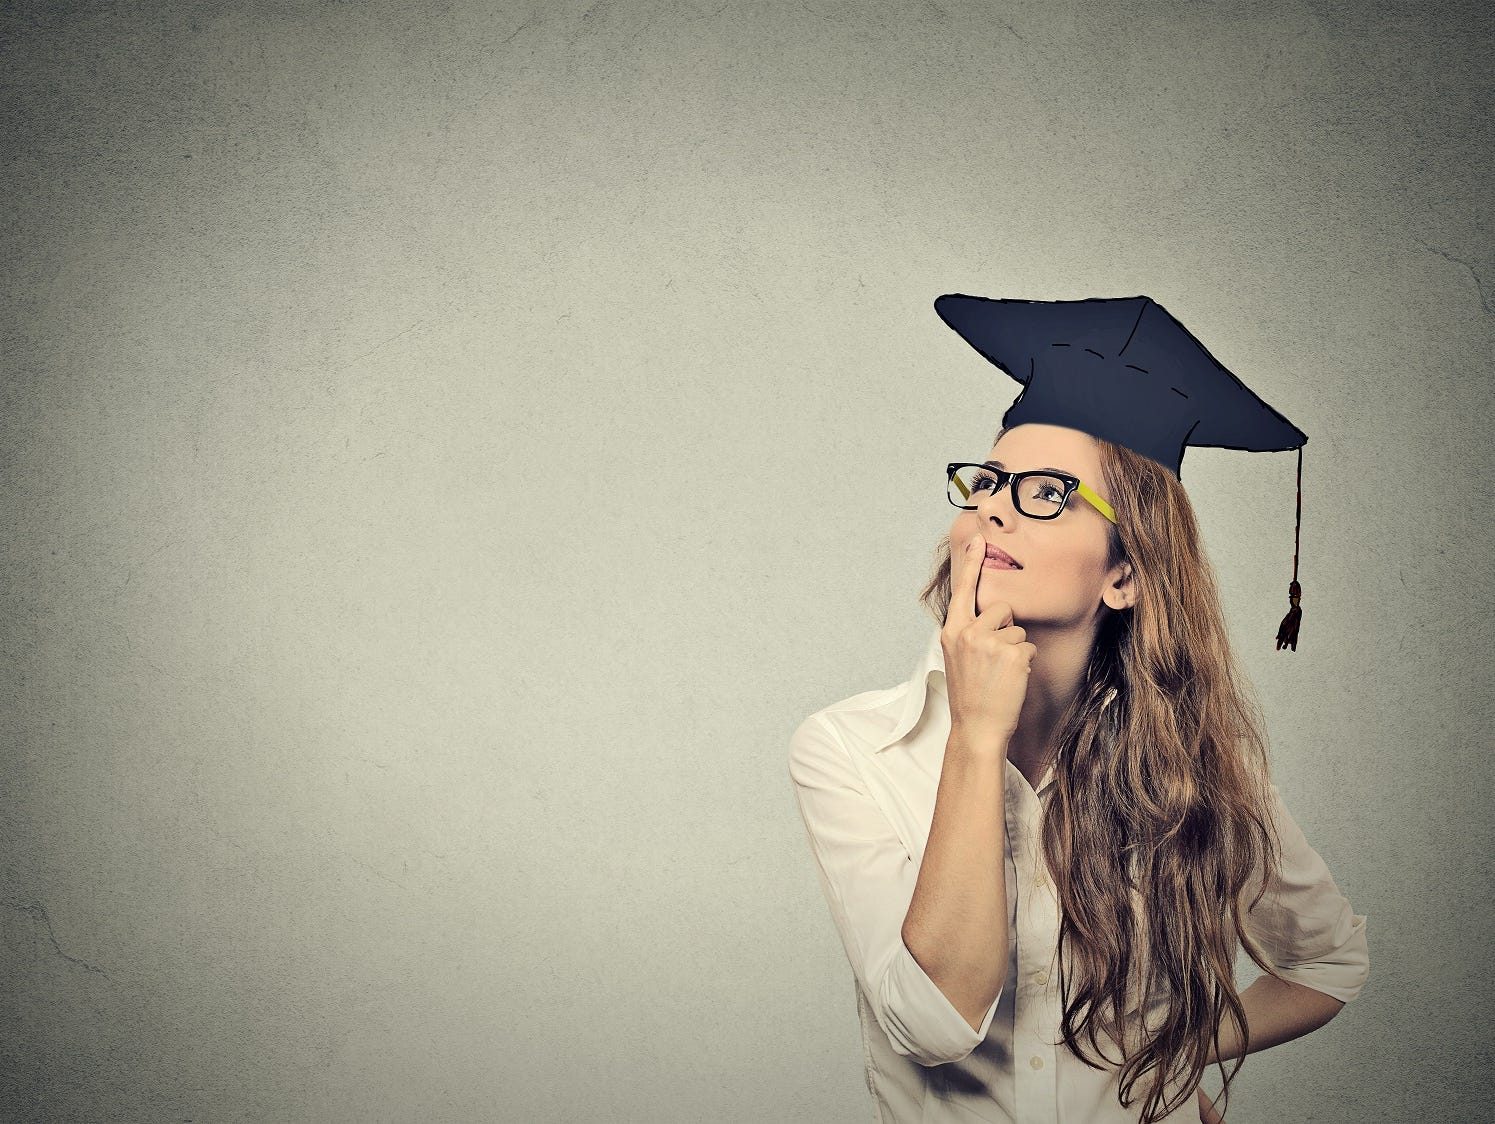 Still contemplating your college major? Take our quiz to find out what field may be a good fit!